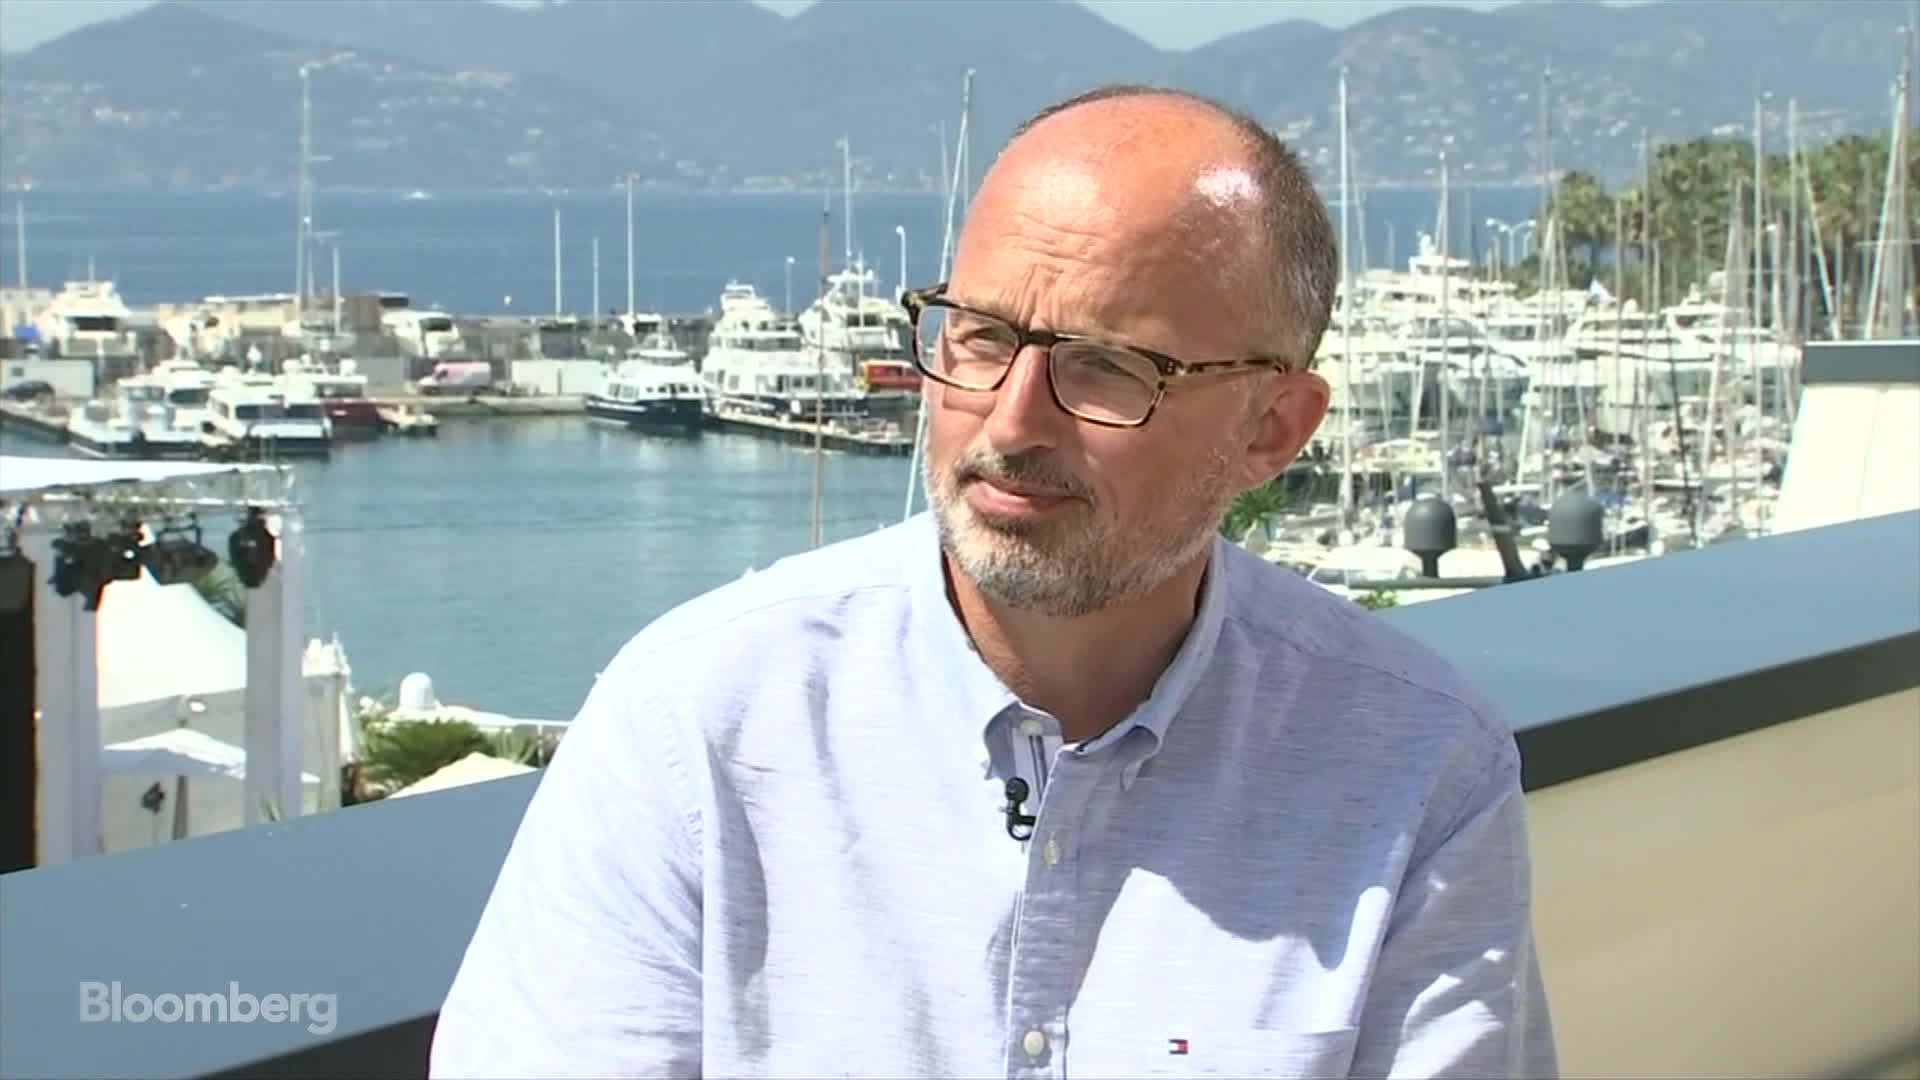 Ascential CEO Discusses Innovation at the Cannes Lions Festival